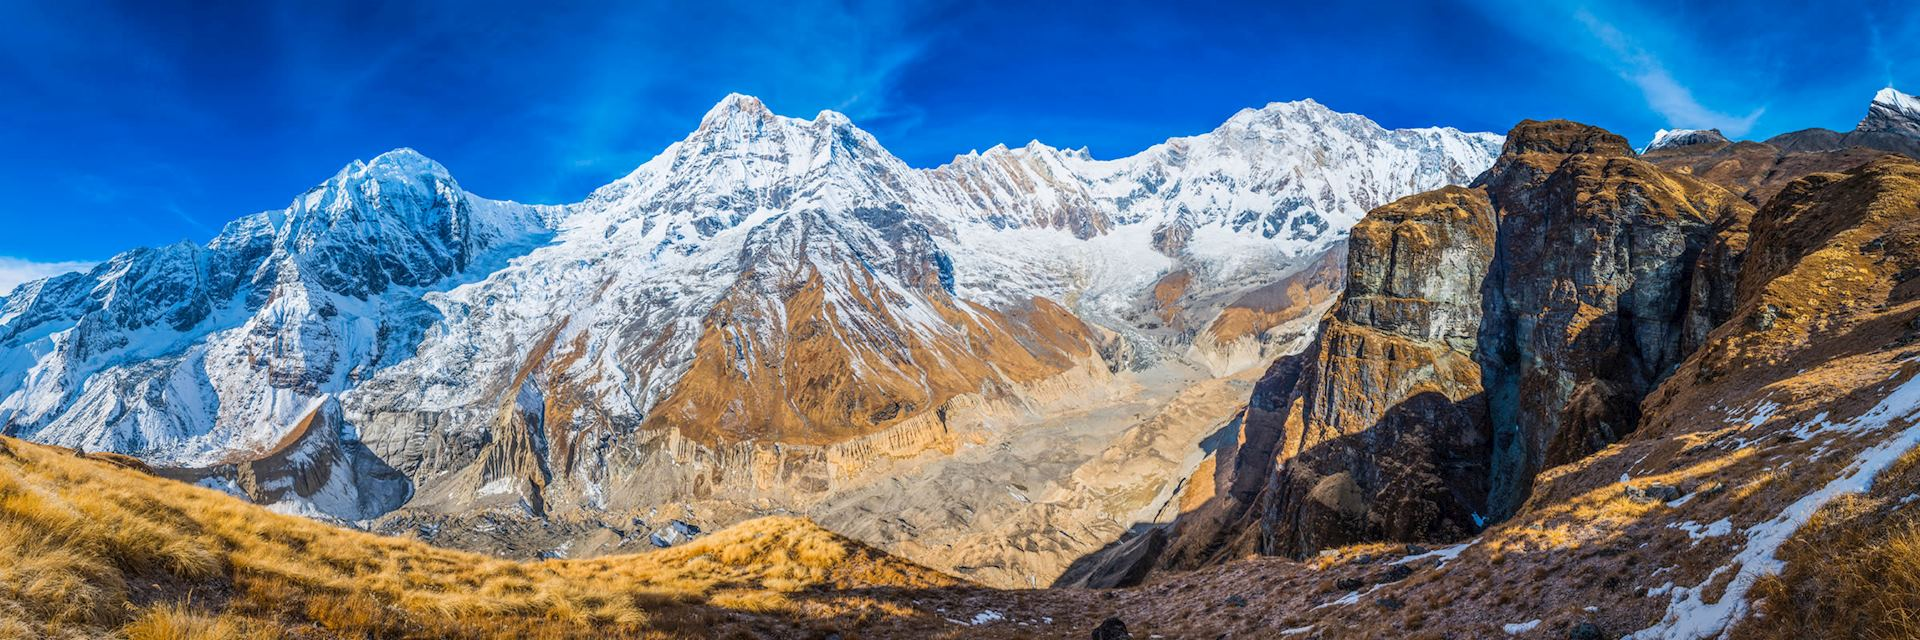 The Annapurna Range in Nepal